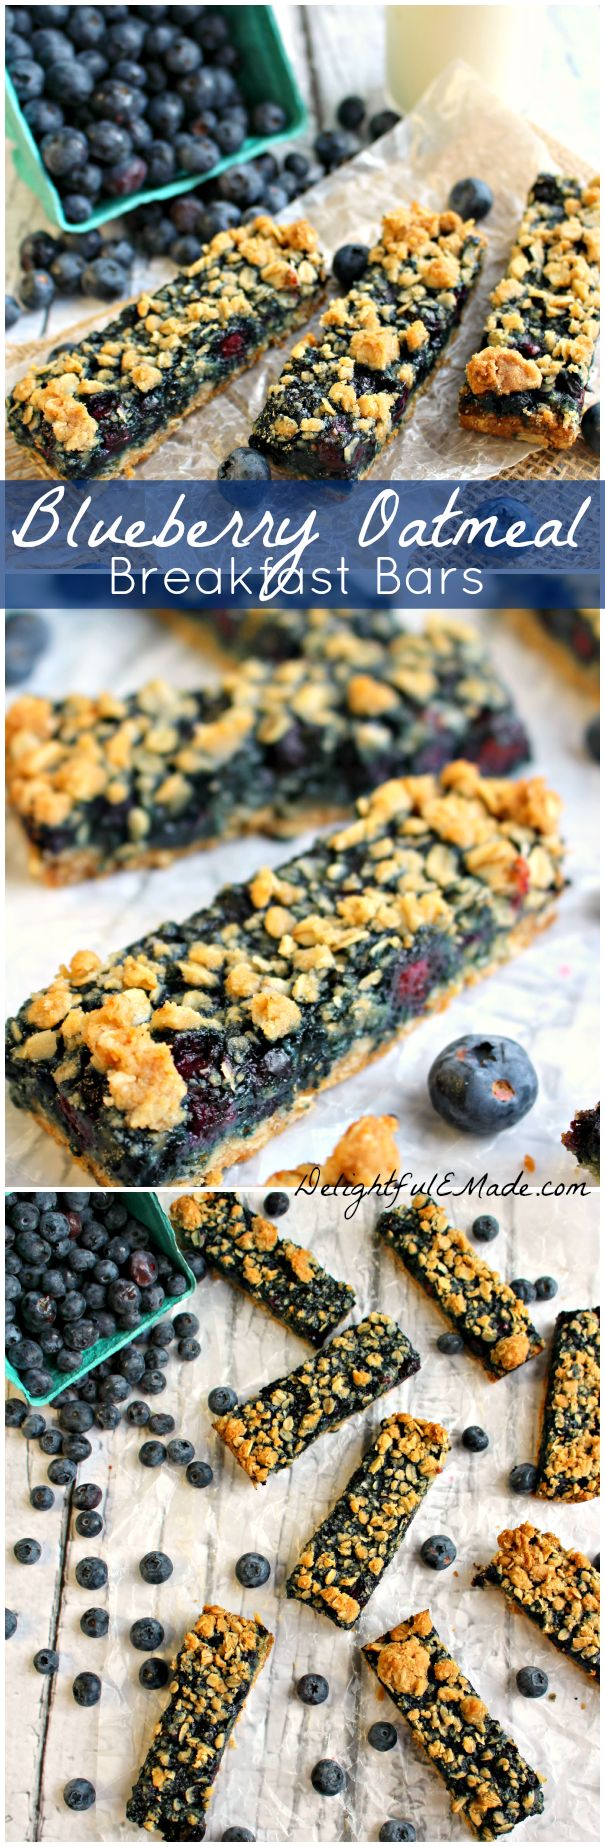 Sweet, juicy blueberries paired with a brown sugar oatmeal crust - simply AMAZING, and the perfect on-the-go breakfast! #blueberry #breakfast #oatmeal